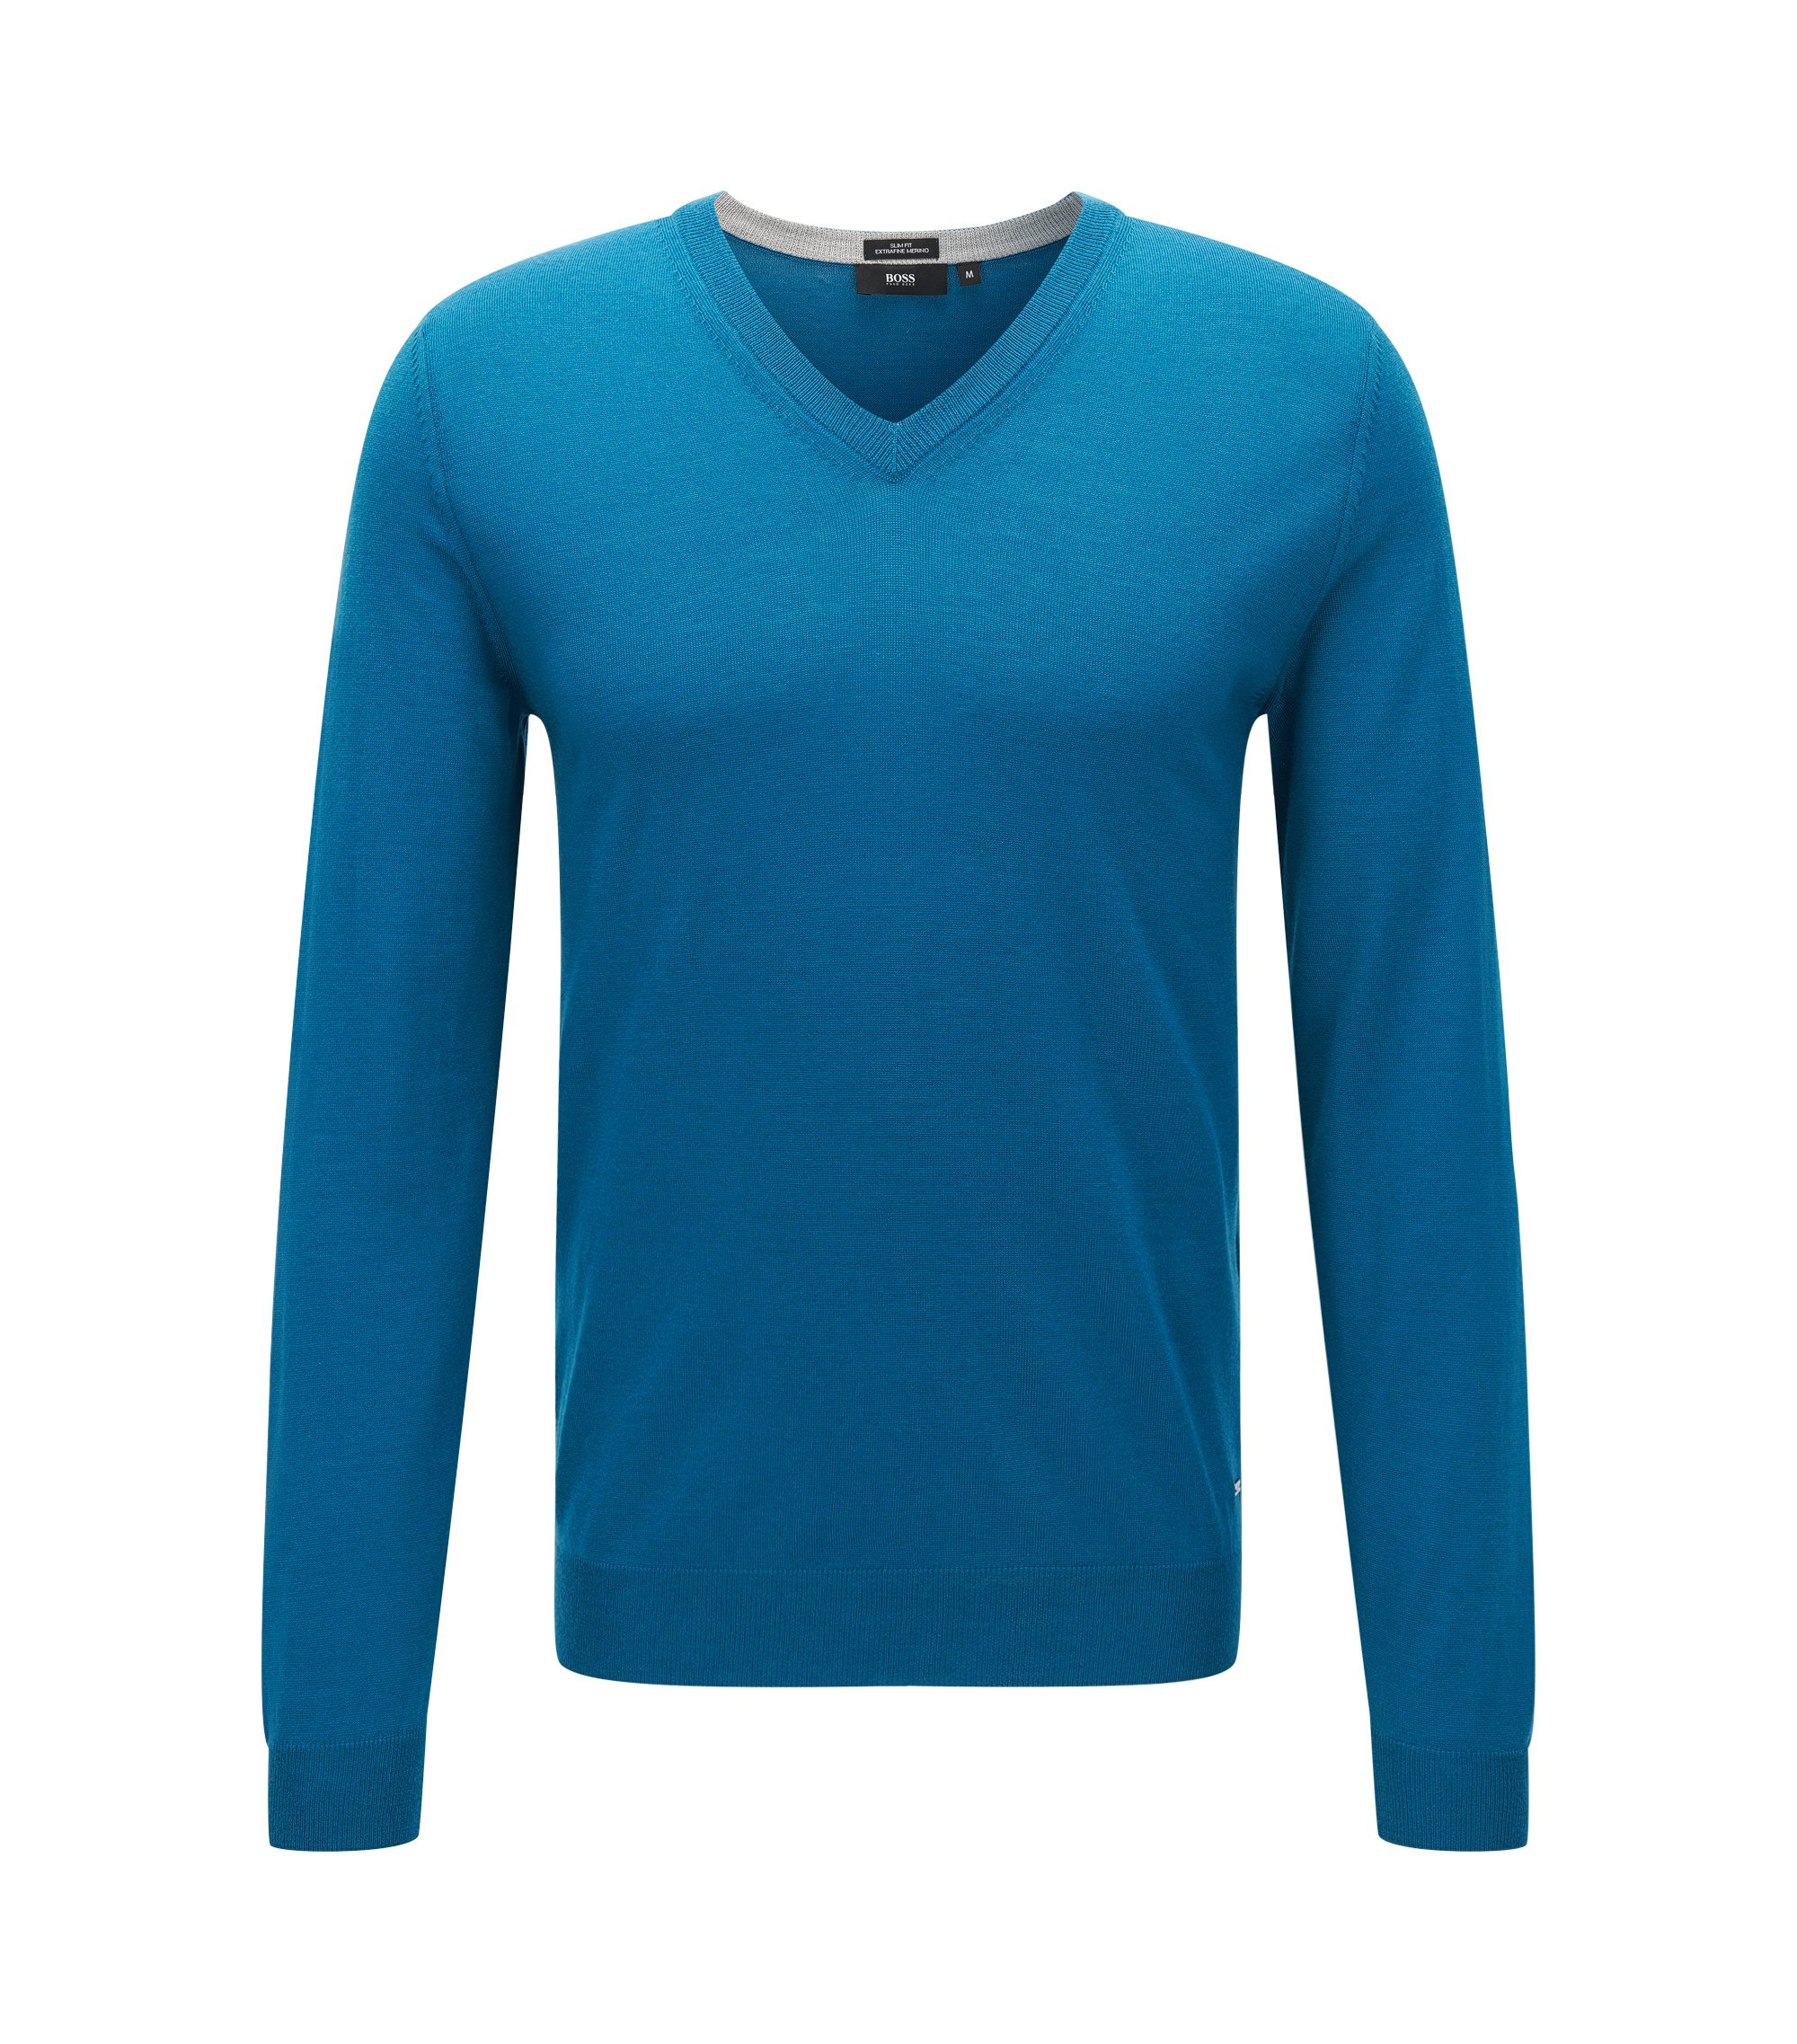 Pull Slim Fit en laine mérinos extra fine, Turquoise